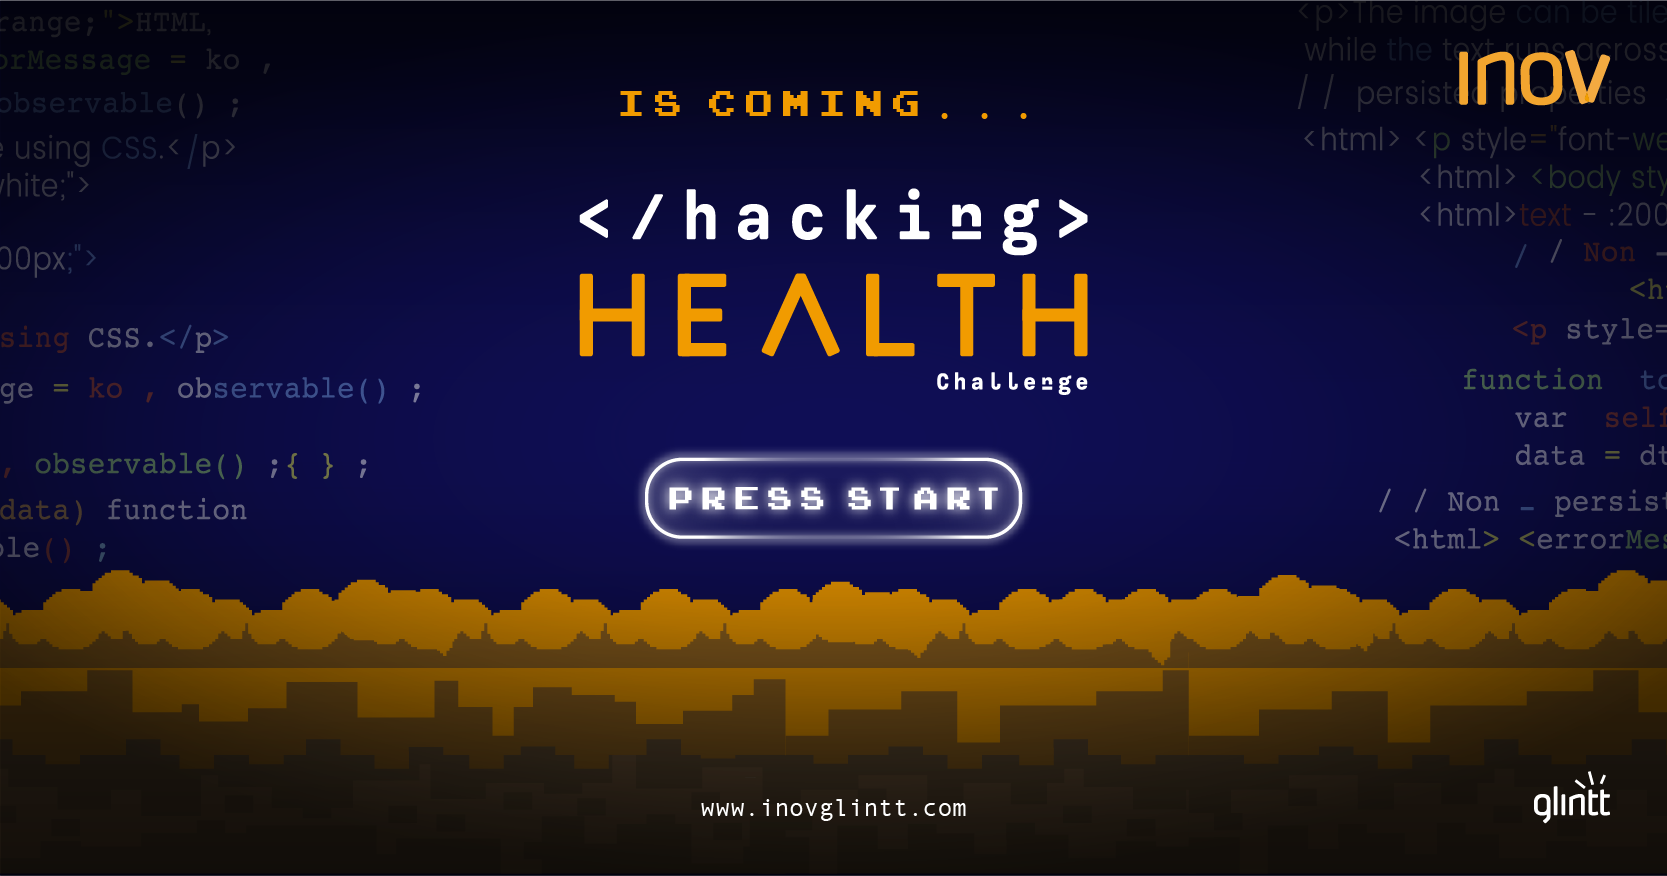 Rumos apoia Hacking Health